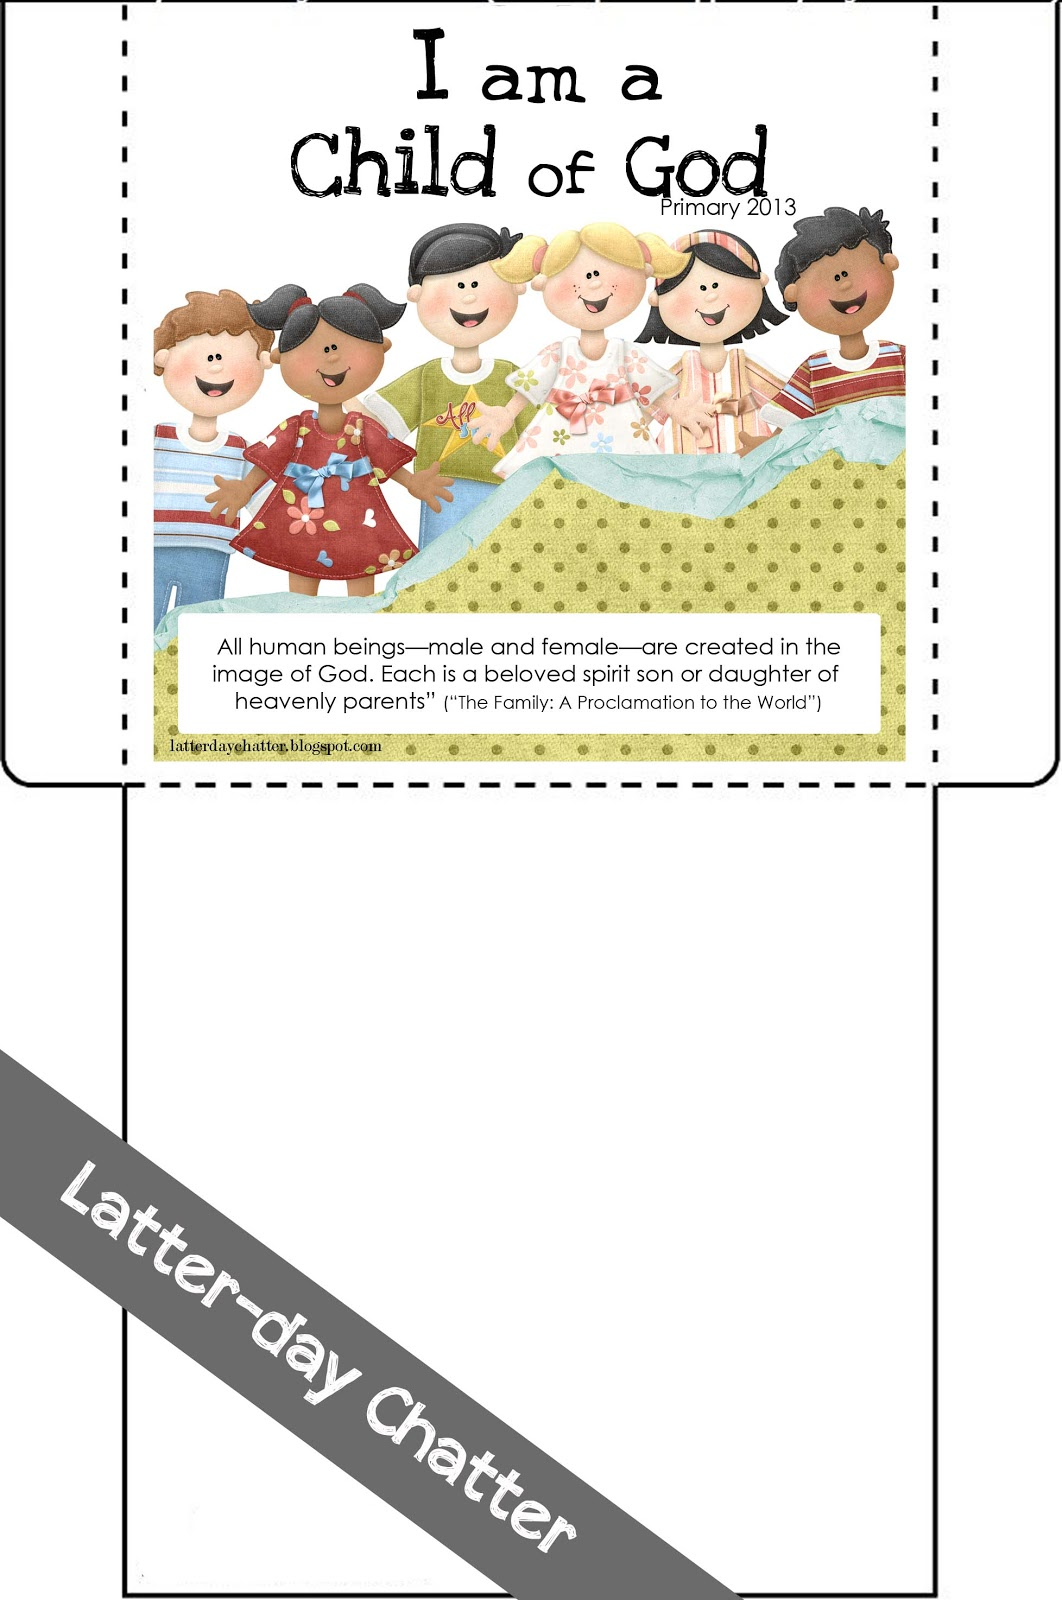 Latter day chatter october 2012 for Avery template 8695